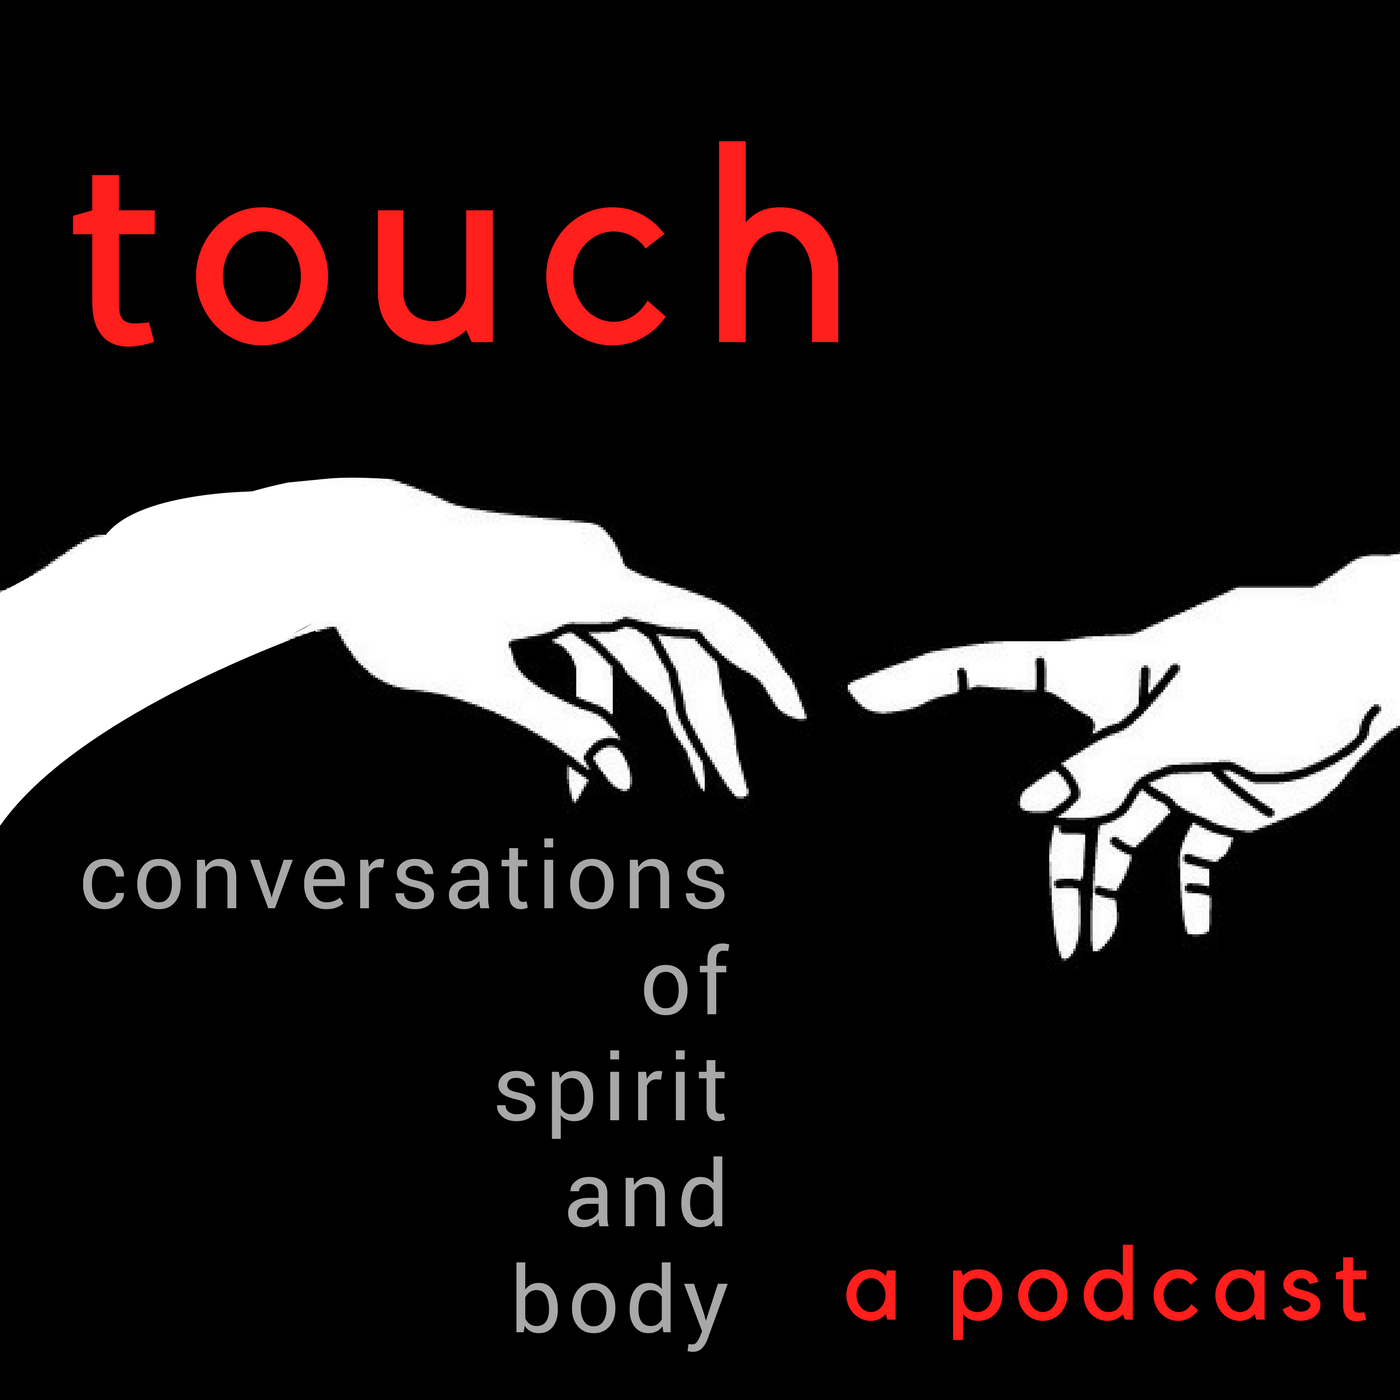 touch podcast final logo.png